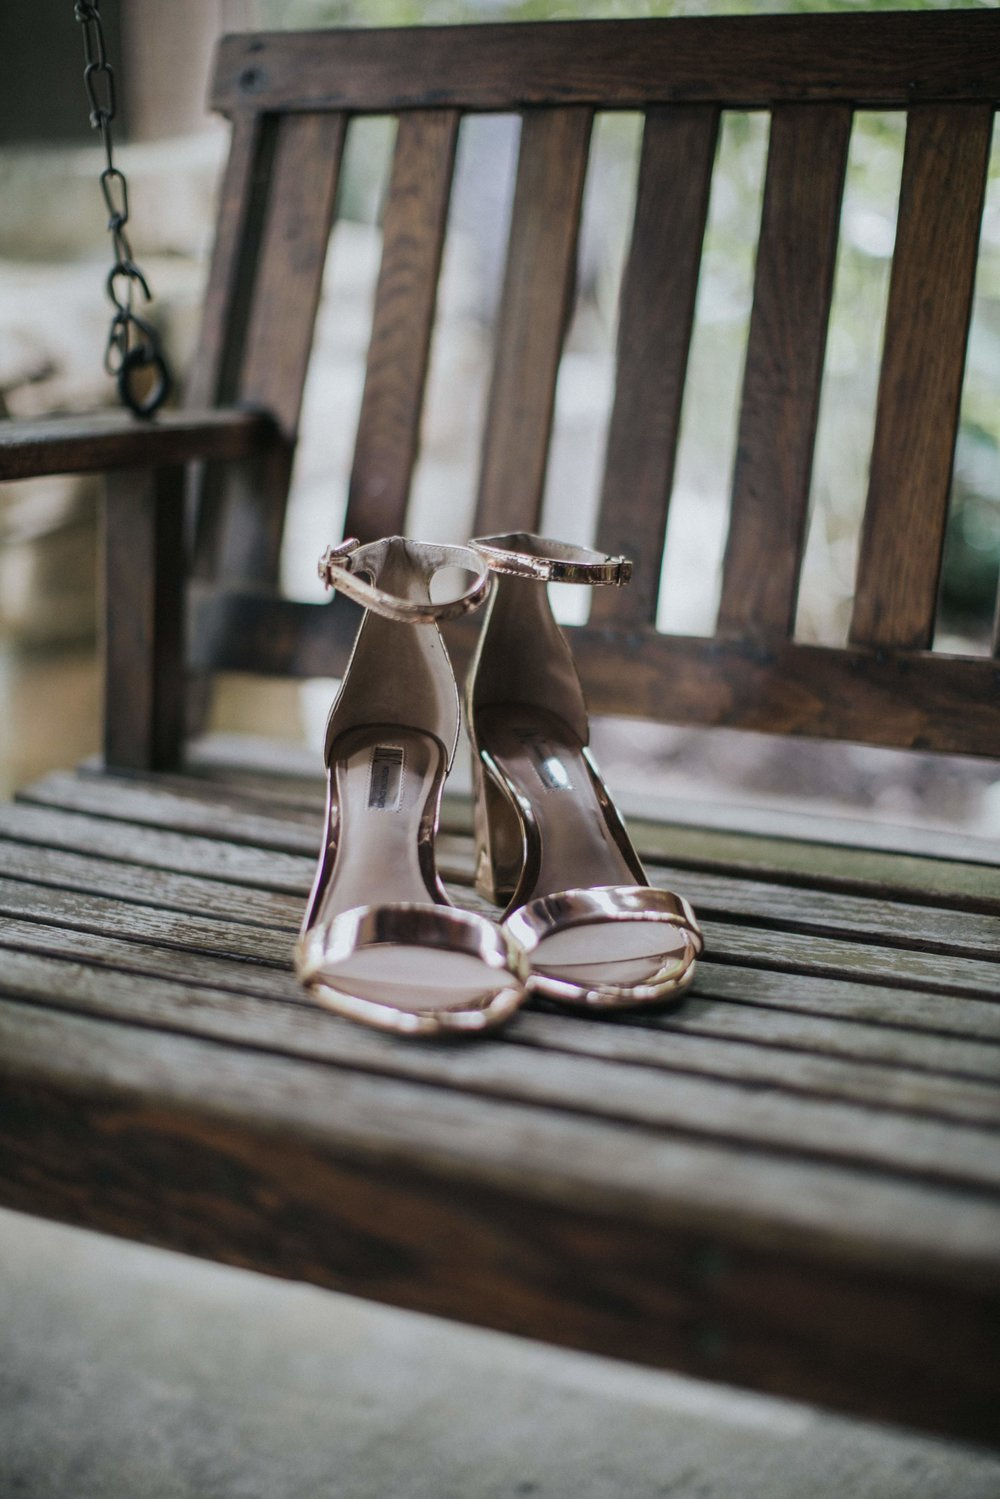 Bride's wedding shoes for rustic wedding in Farmington, PA planned by Exhale Events. Find more wedding inspiration at exhale-events.com!